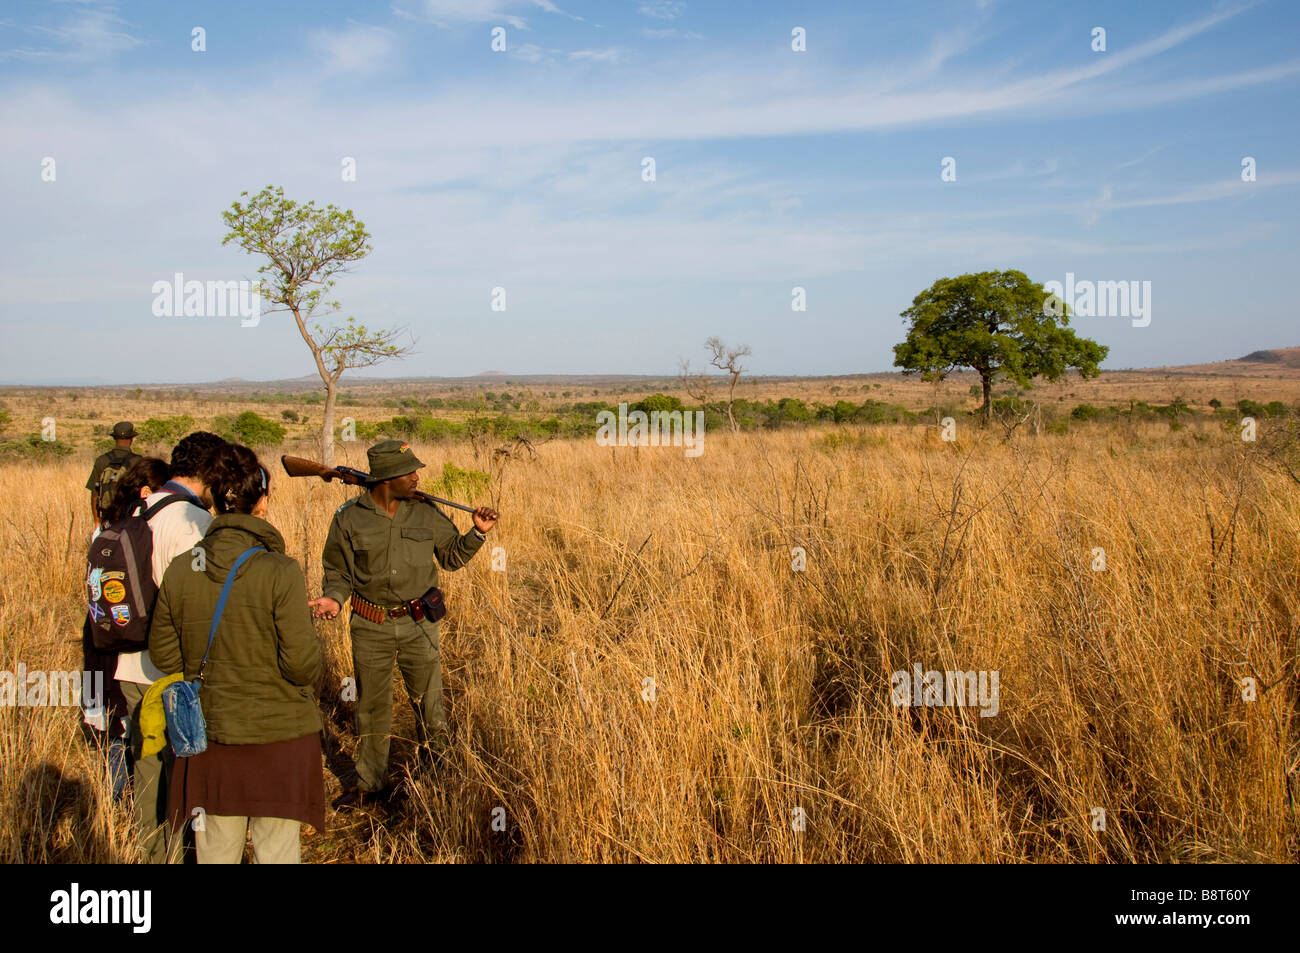 Dawn Bush Walk in Kruger National Park South Africa - Stock Image